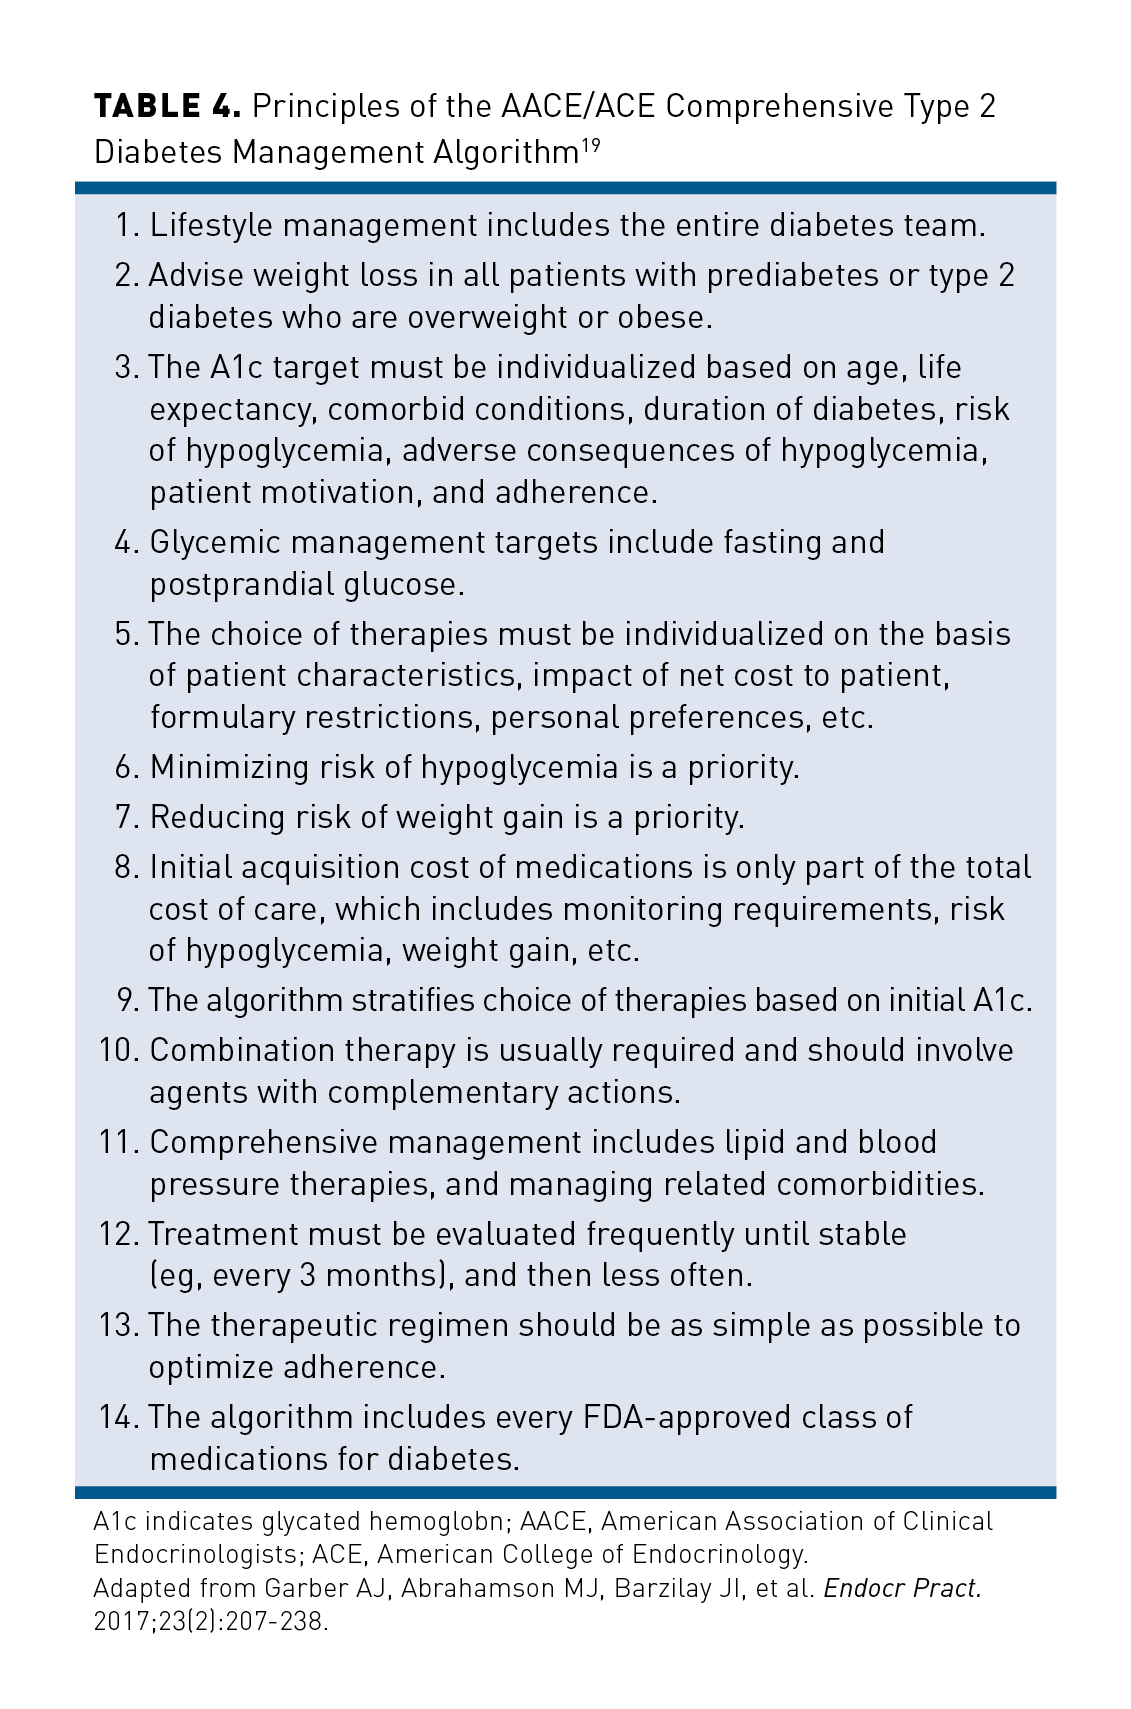 Introduction to Basal Insulin Therapy: Clinical Management